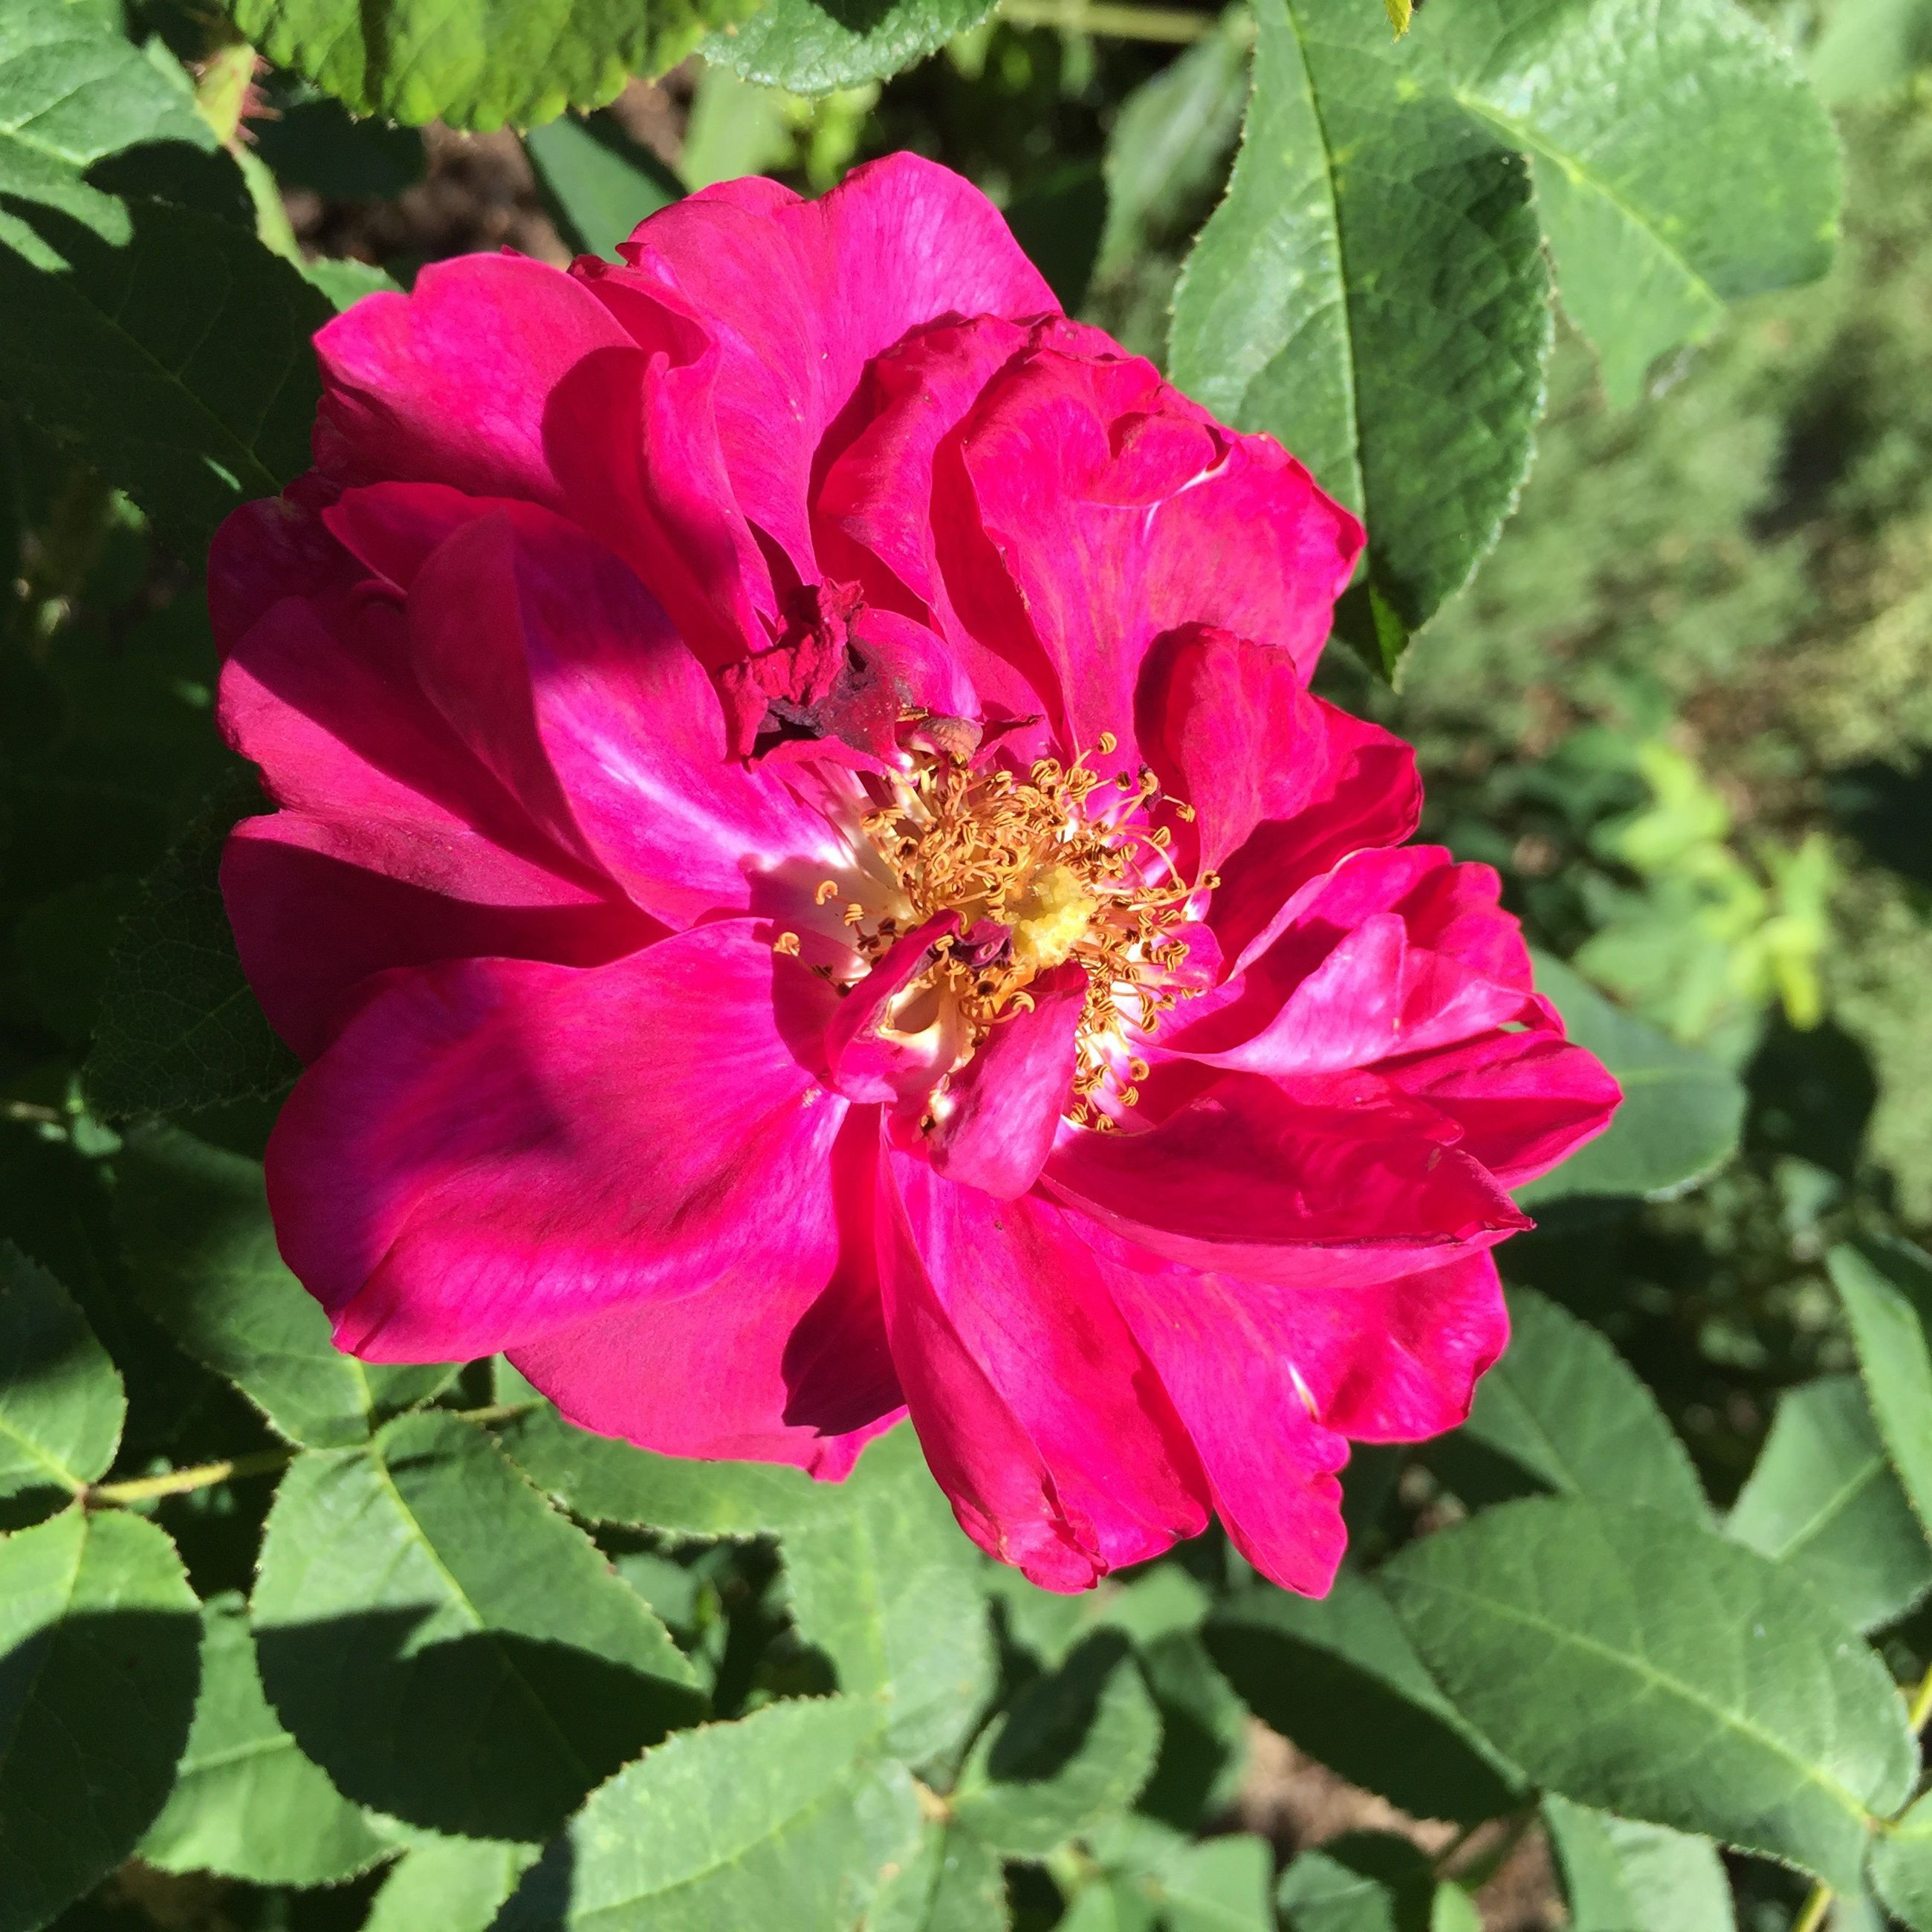 flower, petal, nature, plant, growth, fragility, beauty in nature, flower head, leaf, no people, wild rose, outdoors, day, one animal, freshness, blooming, close-up, animal themes, zinnia